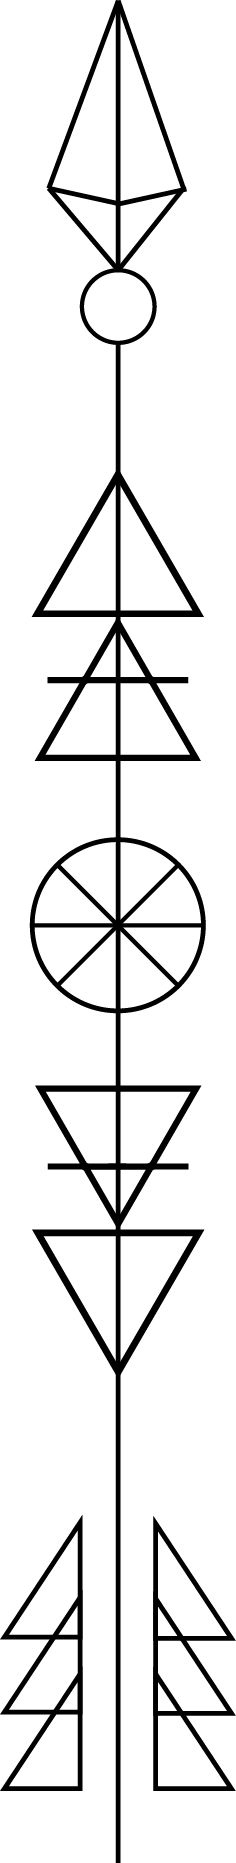 Geometric Arrow. I found the basic design on Pinterest and then added my own flair to it to fit me. The triangles in the middle of the shaft represent the four elements: Air, Fire, Water, and Earth, respectively. The eight-spoked circle in the center represents the Wheel of Life. The arrow itself represents how an arrow can only be shot forward by being pulled back, so that in life, you must remember that you sometimes have to go backward to go forward again. For my left inner forearm.